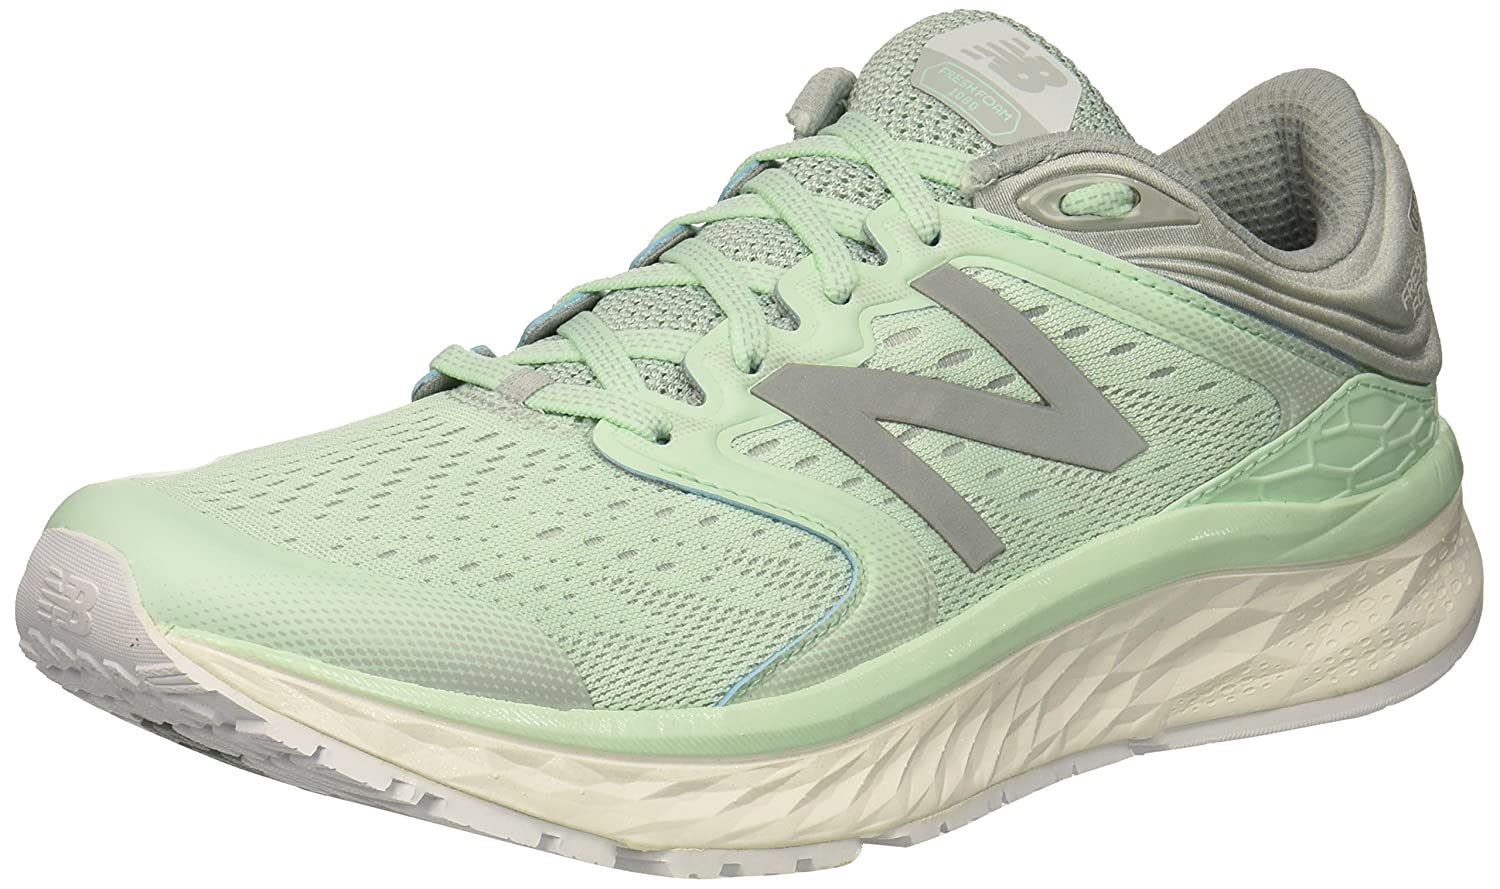 最も信頼できる New Balance Women's W1080 Ankle-High 2A Women's Running Shoe B077PZGZNL ライトブルー 8 8 2A US 8 2A US|ライトブルー, CRAZYBOO:b42e17c3 --- apundiscountdega.com